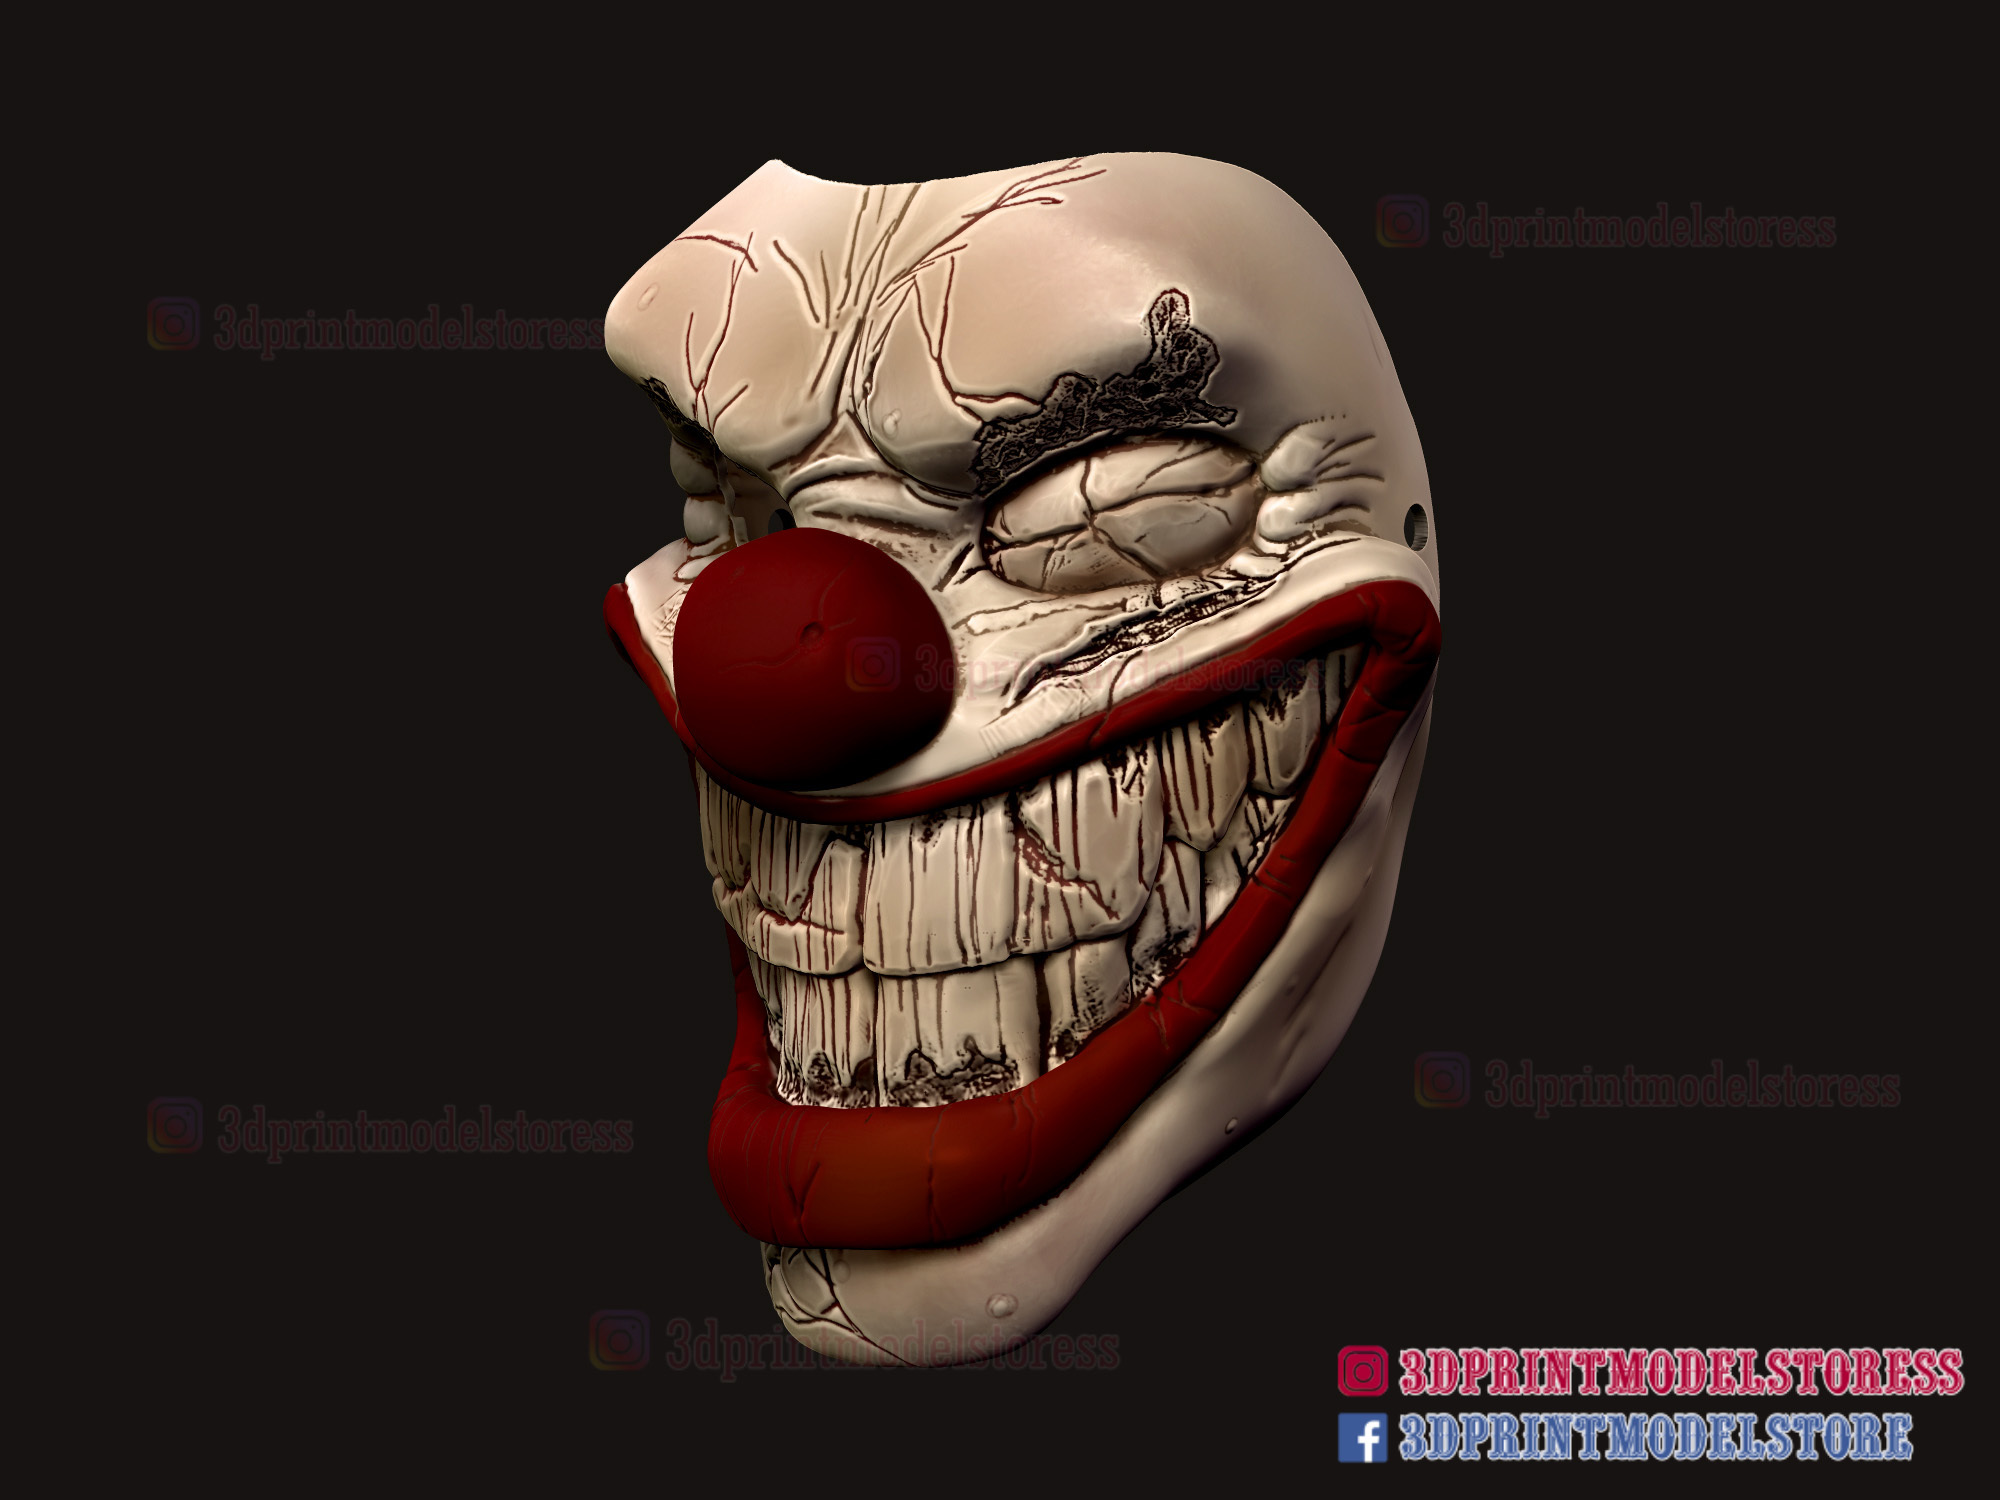 Twisted_metal_killer_clown-06.jpg Download STL file Twisted Metal Killer Clown Mask  • 3D printer model, 3DPrintModelStoreSS